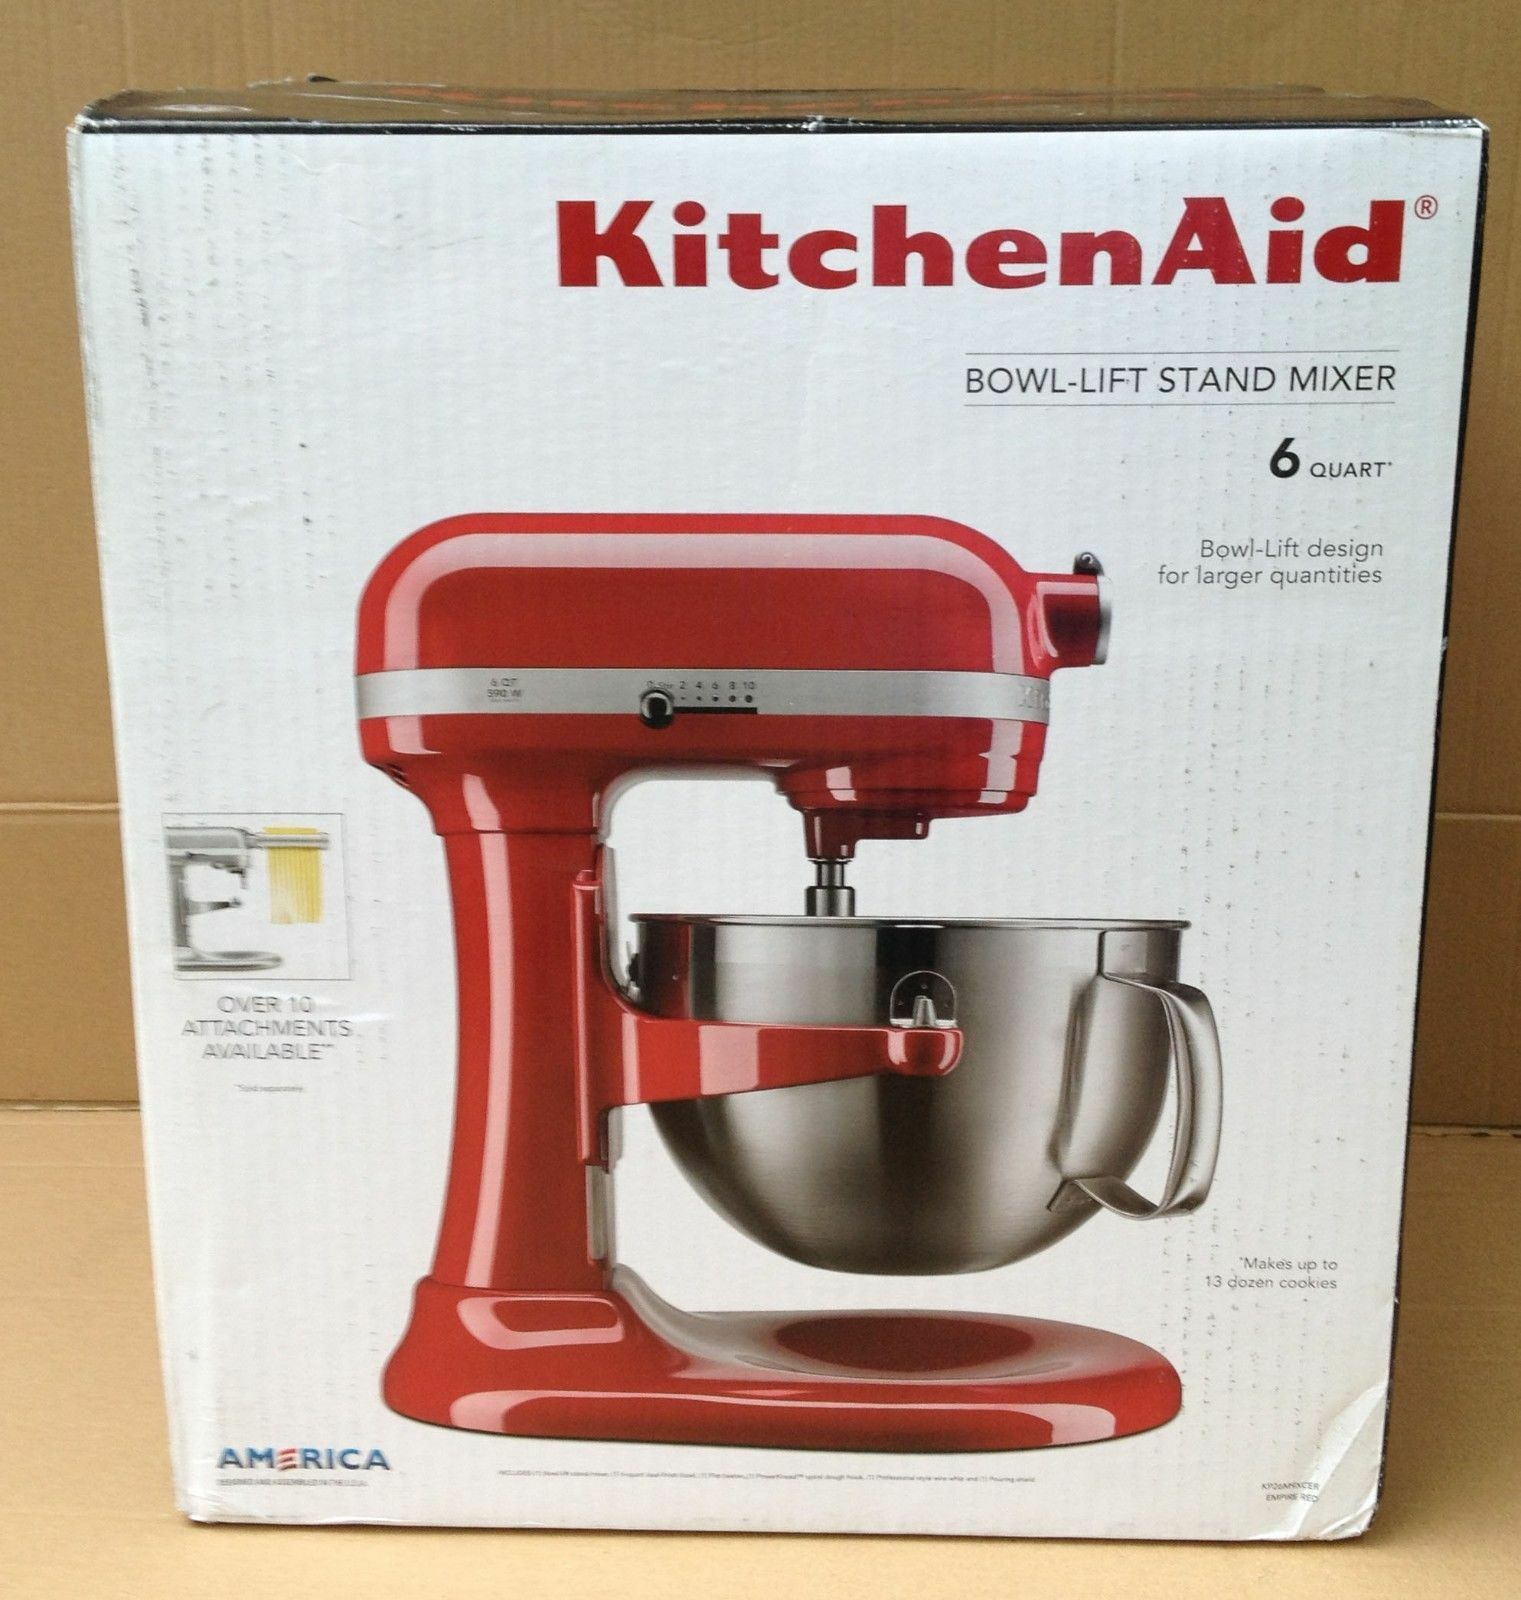 KitchenAid 6-quart Bowl-lift Stand Mixer - Emprire Red (KP26M9XCER on kitchen wall accessories, lg accessories, lace accessories, viking accessories, cannon safe accessories, nespresso accessories, nikon accessories, unique home accessories, foodsaver accessories, corelle accessories, marvel accessories, general electric accessories, garmin accessories, nike accessories, canon accessories, wolf accessories, garden tractor attachments and accessories, ikea accessories, microsoft accessories, yamaha accessories,